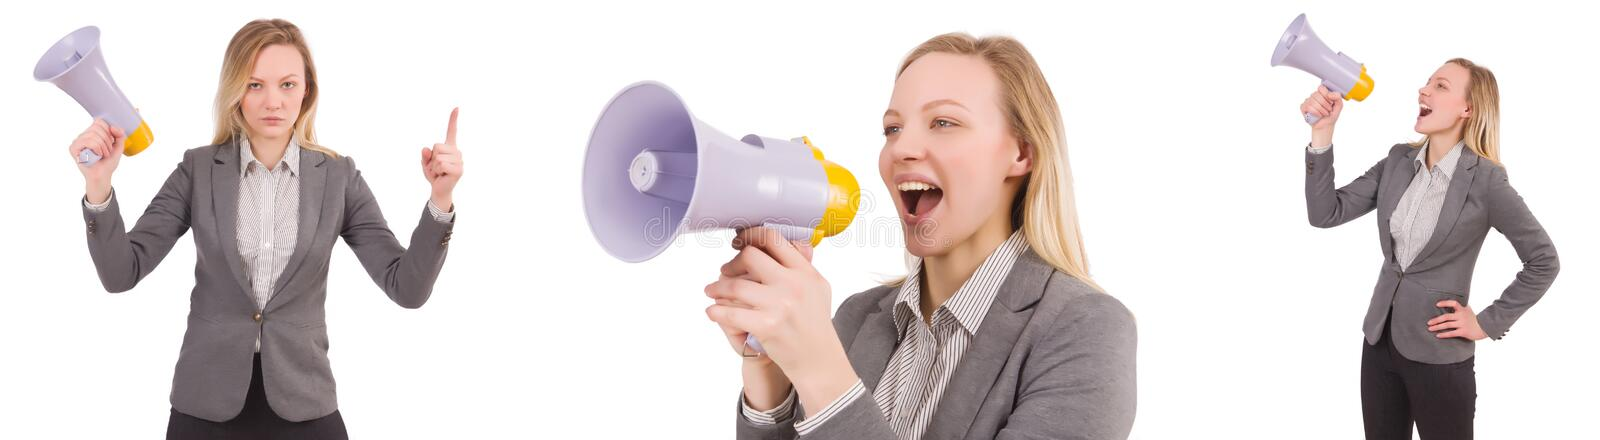 The businesswoman with bullhorn isolated on white. Businesswoman with bullhorn isolated on white royalty free stock photo